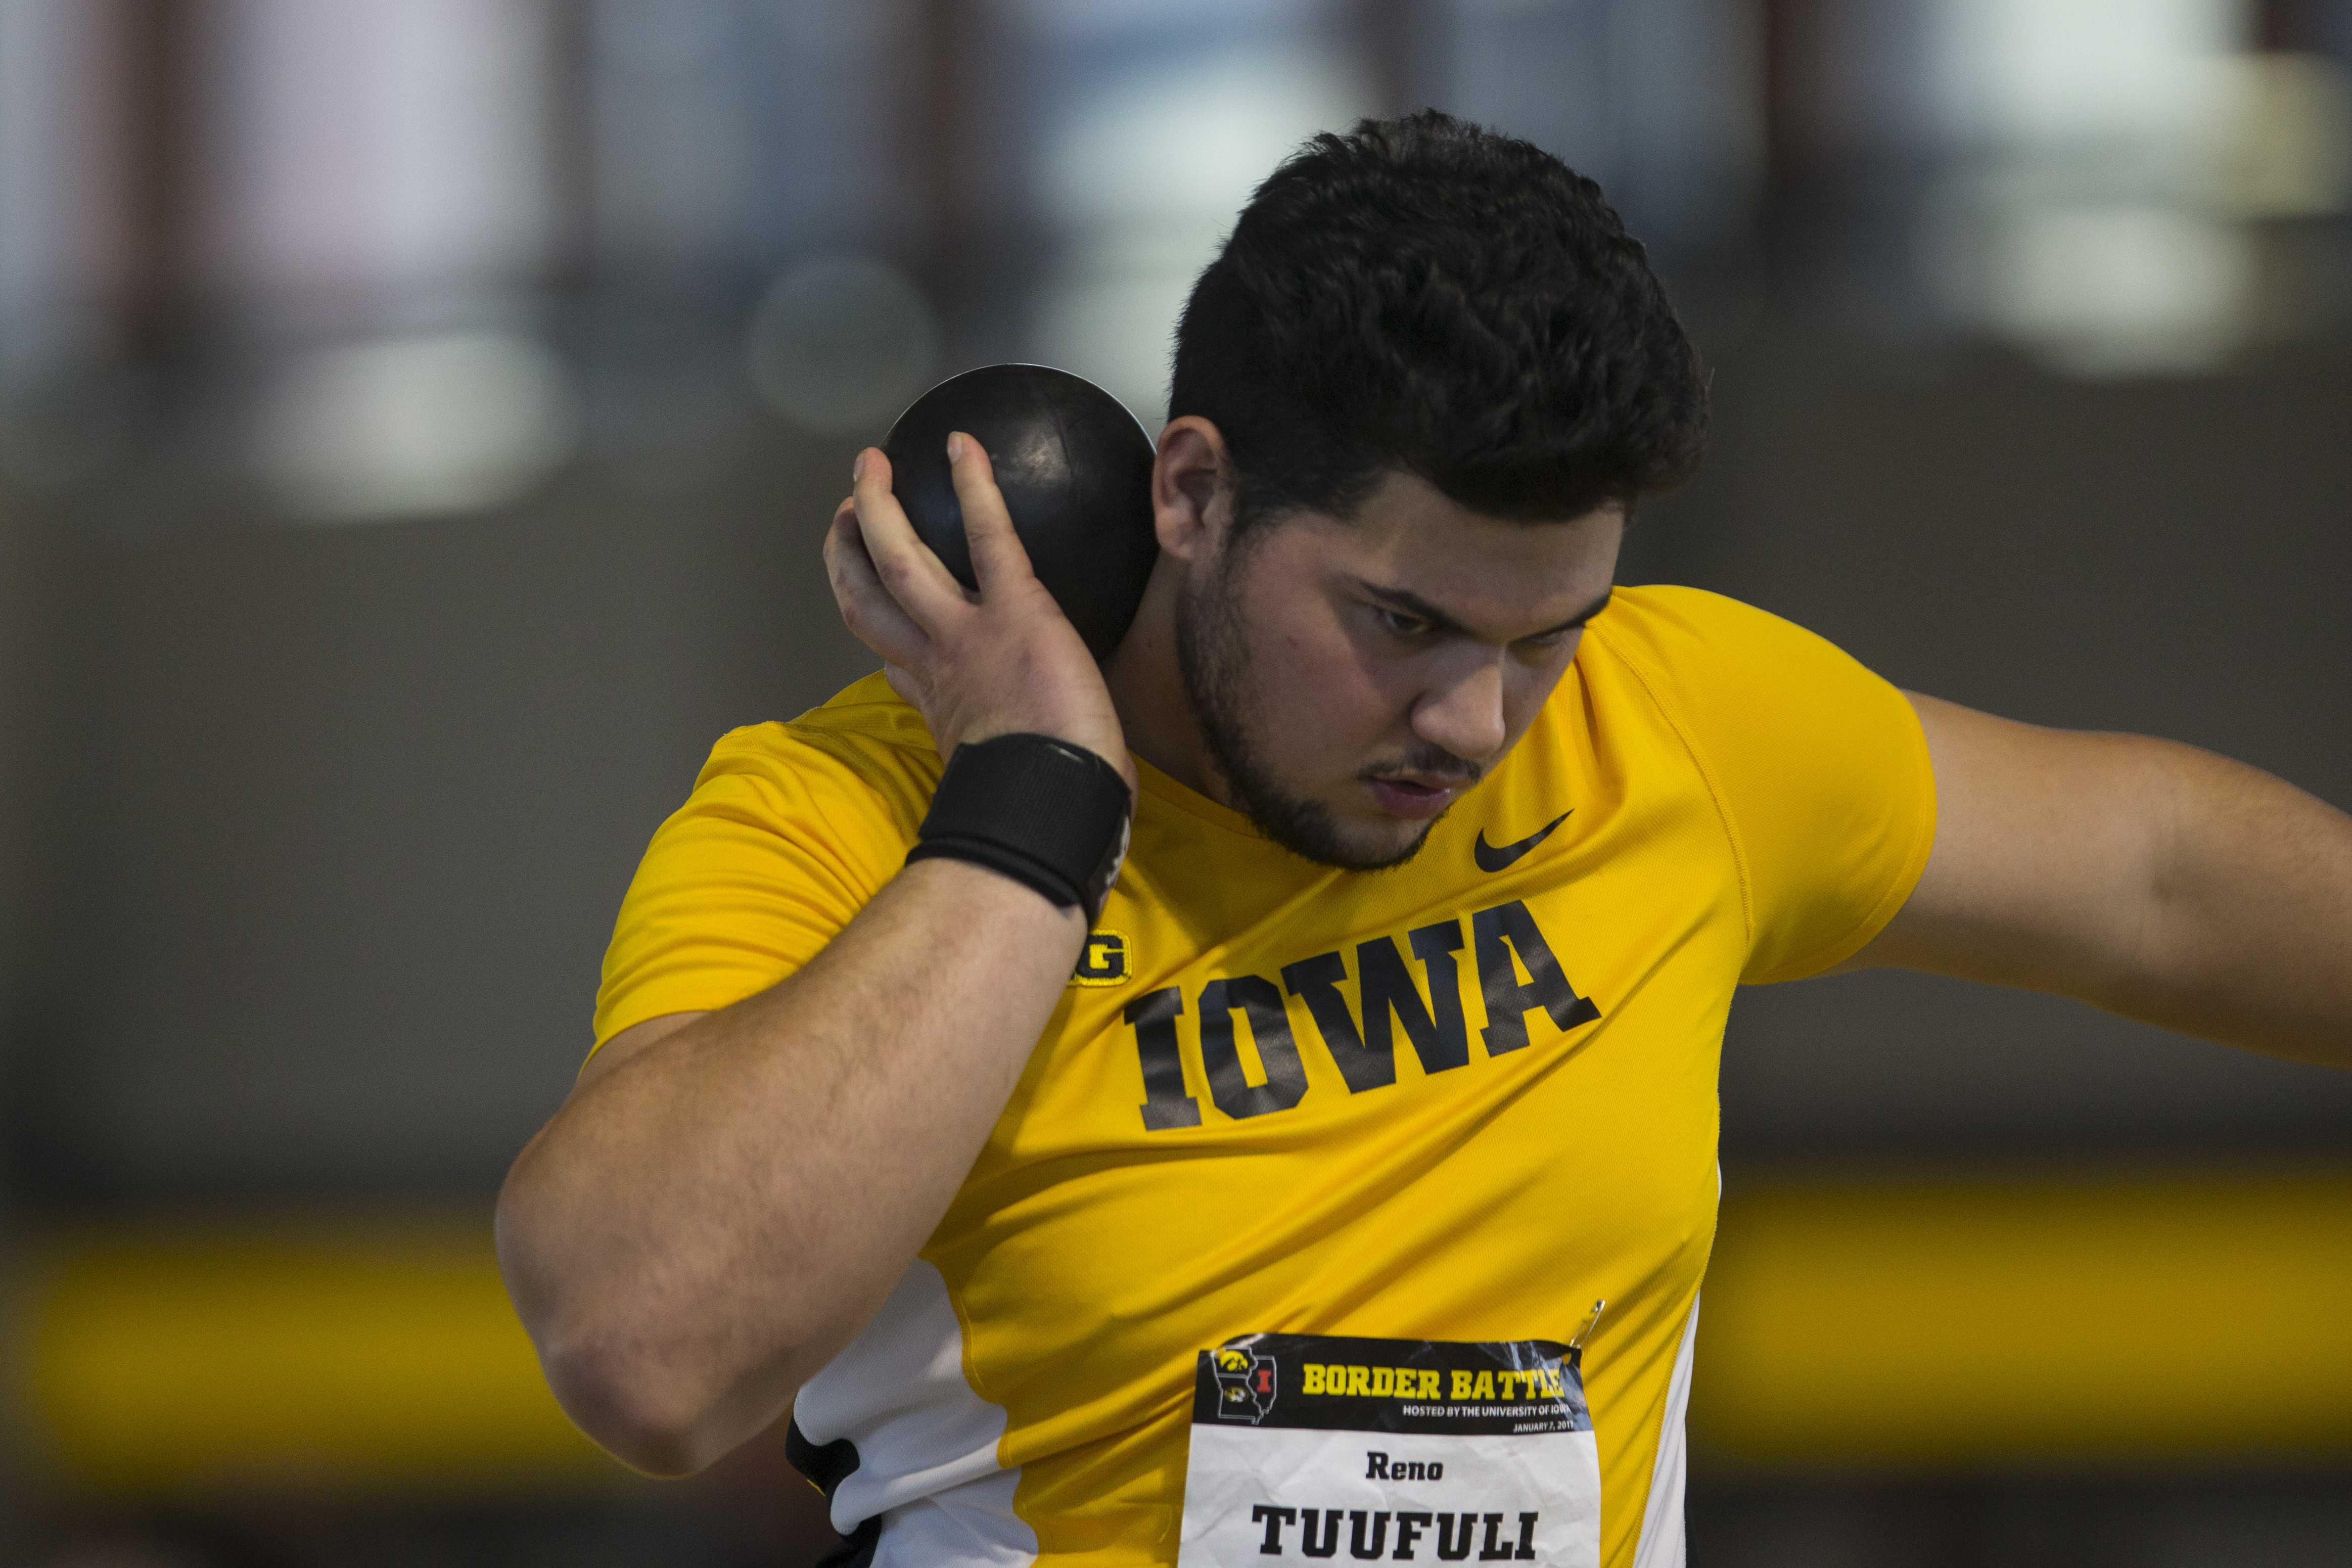 Iowa sophomore Reno Tuufuli attempts a throw during the Border Battle indoor track meet in the UI Recreation Building with Iowa, Missouri and Illinois competing on Saturday, Jan. 7, 2017. The Hawkeye women defeated Missouri and Illinois, 105-33 and 96-51 respectively, while the men defeated Missouri, 107-27 and fell to Illinois, 85-74. (The Daily Iowan/Joseph Cress)